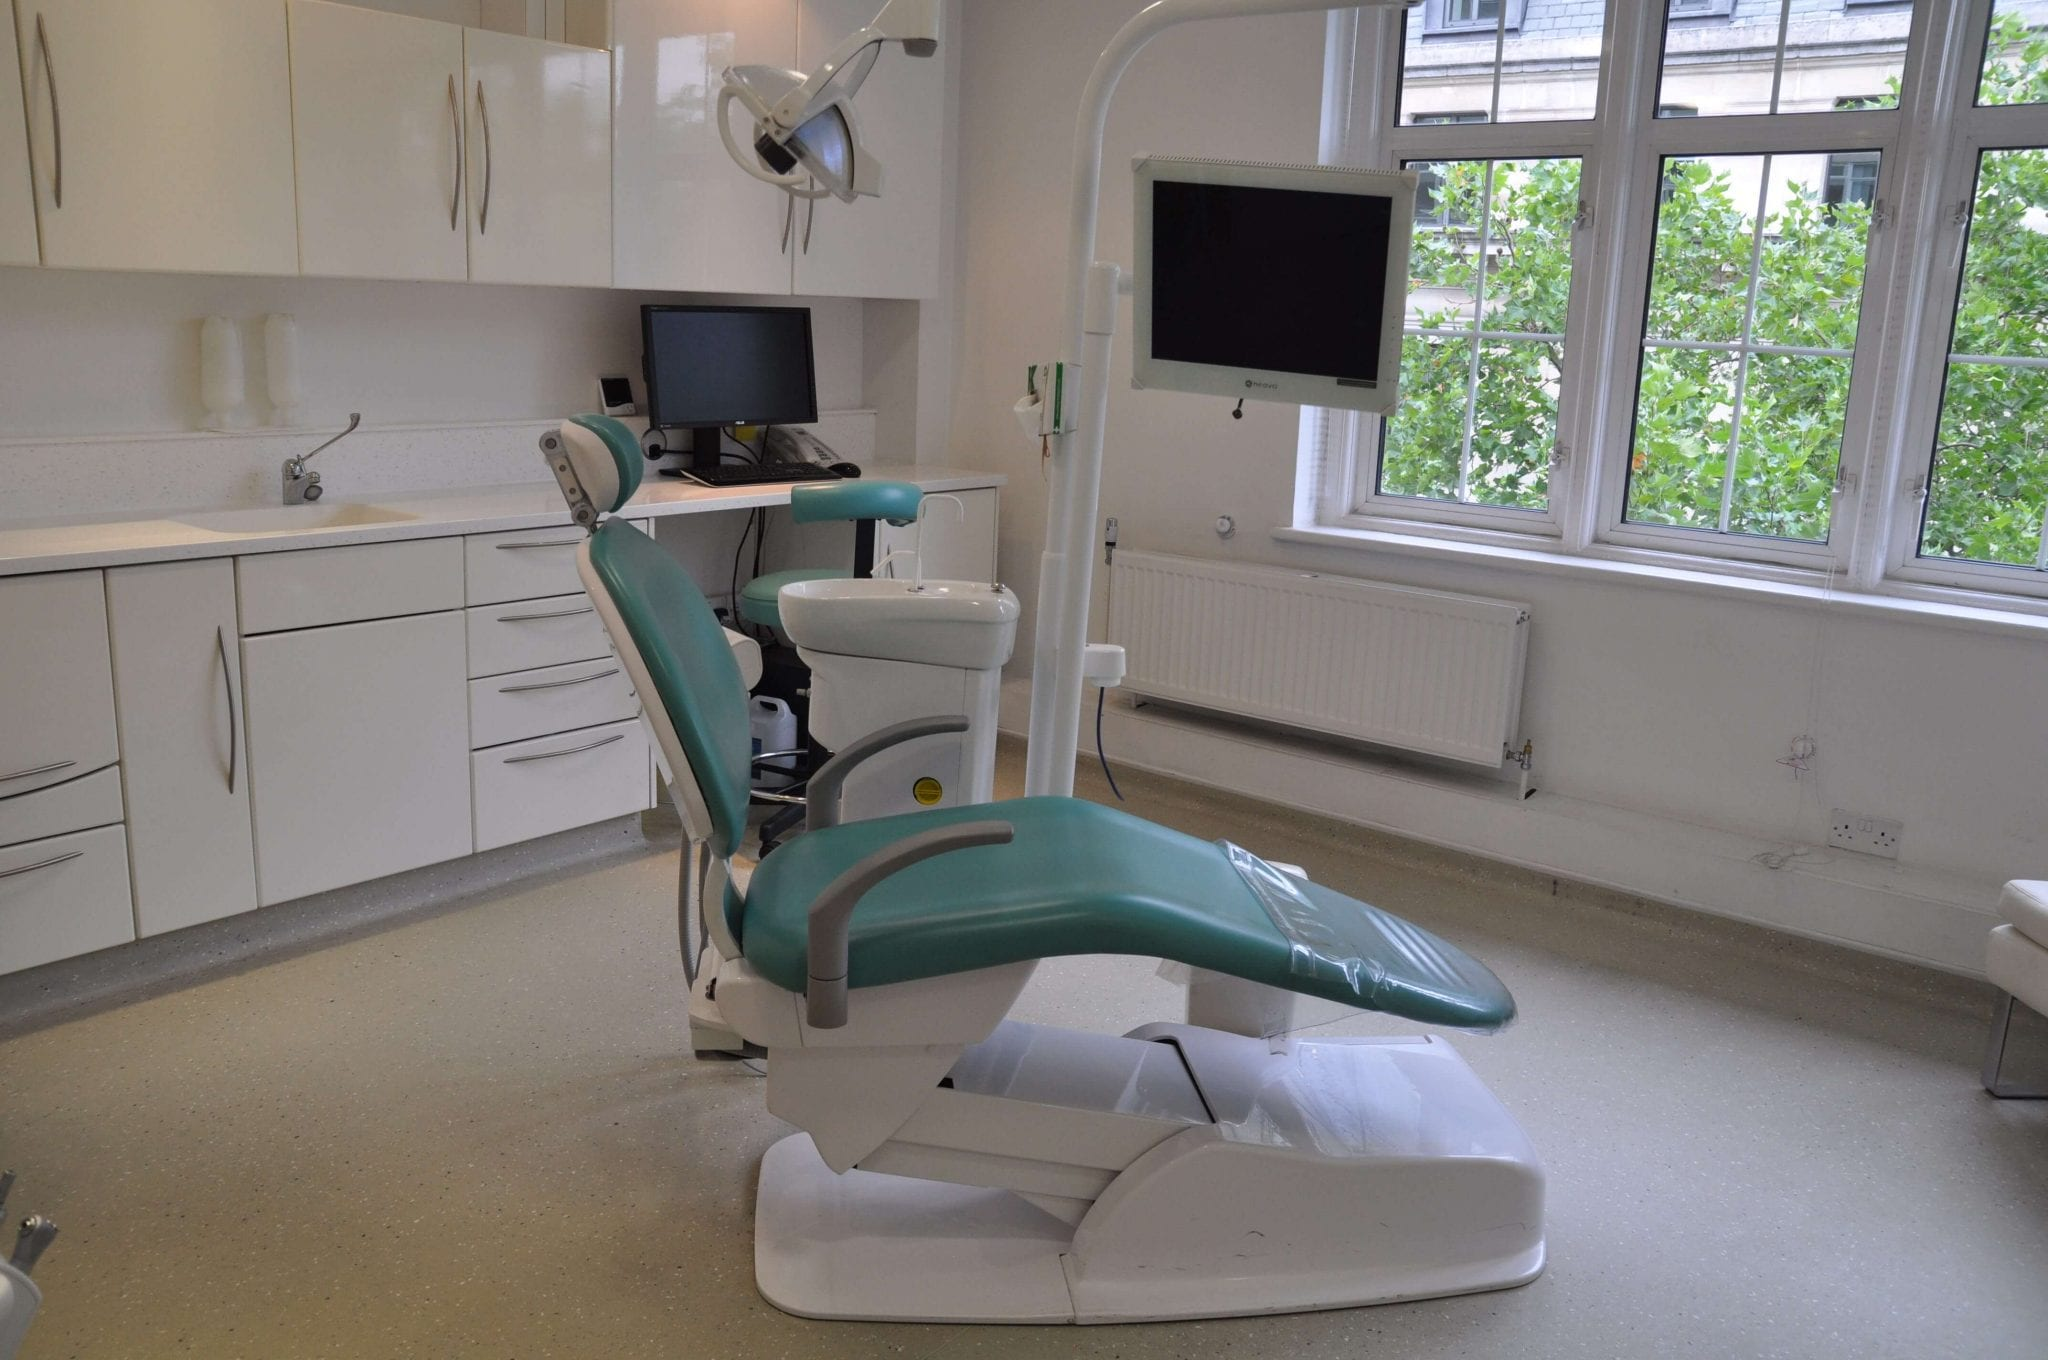 Personable About Us  London Holborn Dental Practice  Sardinia Dental  With Heavenly Now They Reside In A Newly Renovated Practice Situated On The Th Floor Of  Sardinia House Sardinia Street A Short Walk Between Holborn And Aldwych   With Appealing National Trust Garden Also Wheeled Garden Sprayer In Addition Stanway Garden Centre And Garden Chimney As Well As Elevated Garden Bed Kits Additionally Gardens In The Midlands From Sardiniadentalcom With   Heavenly About Us  London Holborn Dental Practice  Sardinia Dental  With Appealing Now They Reside In A Newly Renovated Practice Situated On The Th Floor Of  Sardinia House Sardinia Street A Short Walk Between Holborn And Aldwych   And Personable National Trust Garden Also Wheeled Garden Sprayer In Addition Stanway Garden Centre From Sardiniadentalcom